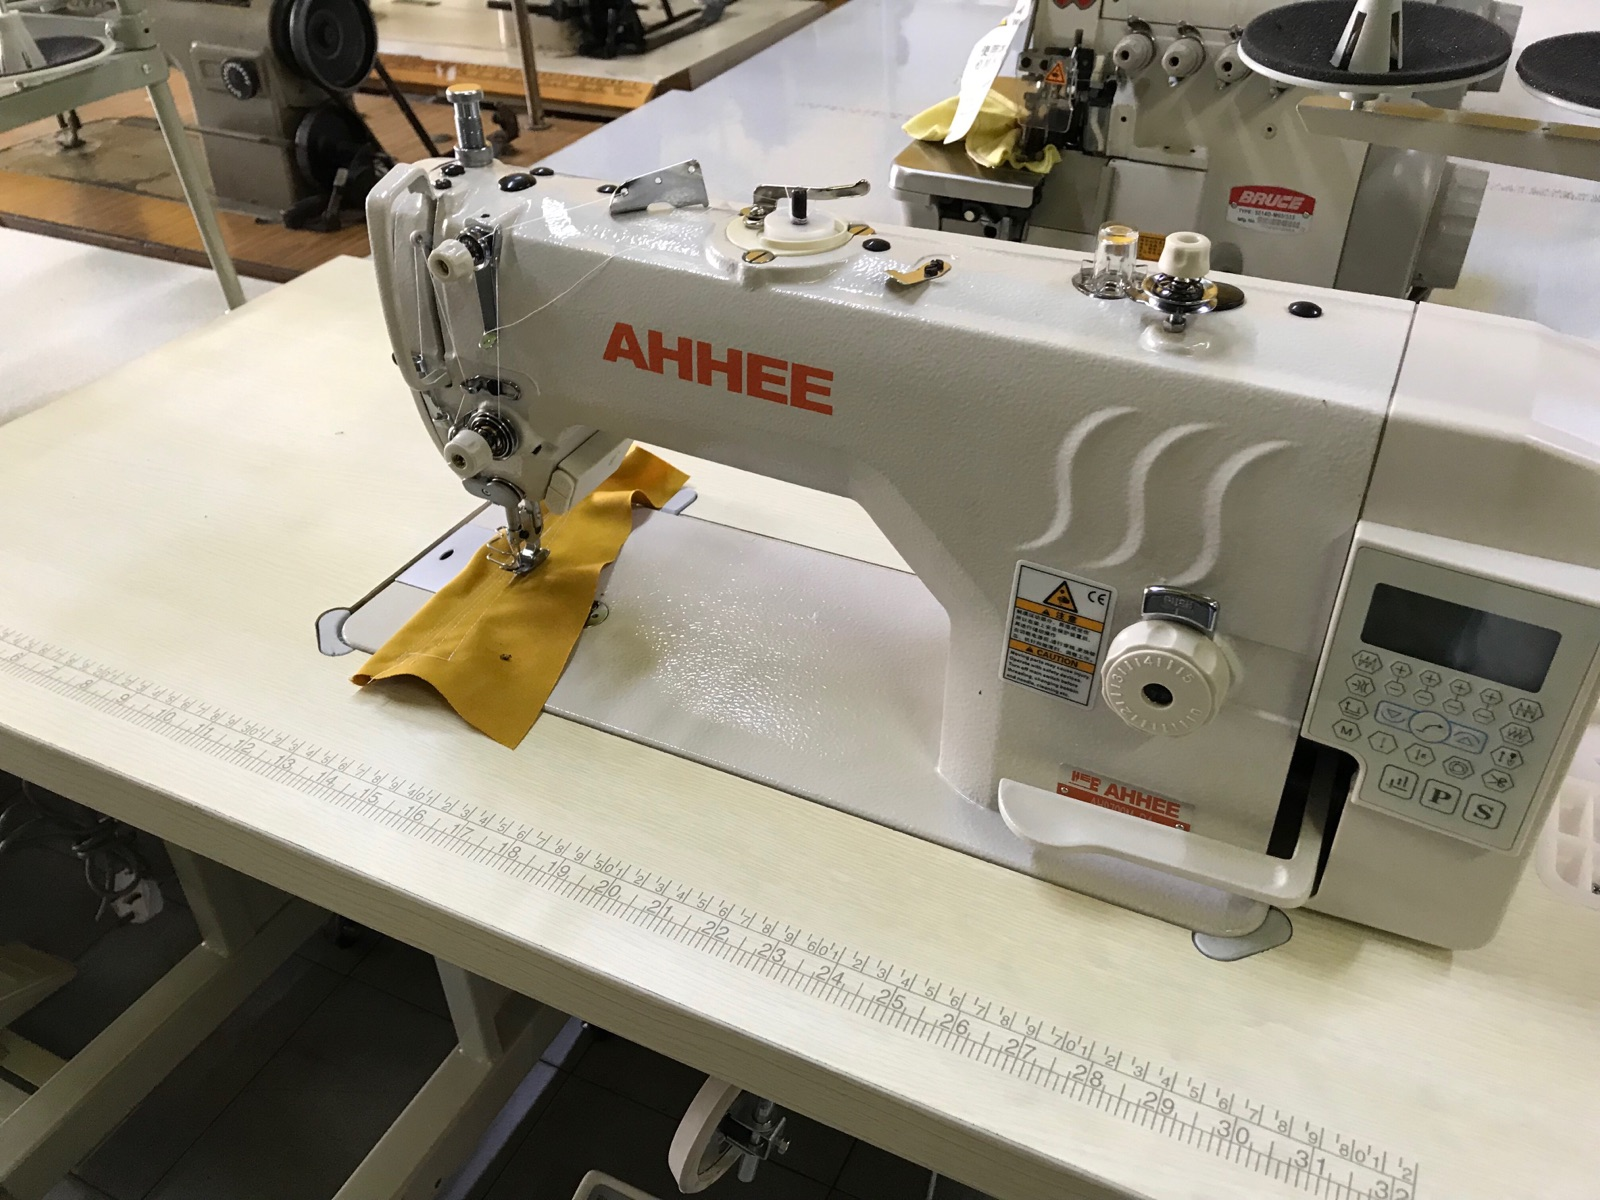 New AHHEE Hi Speed Sewing Machine